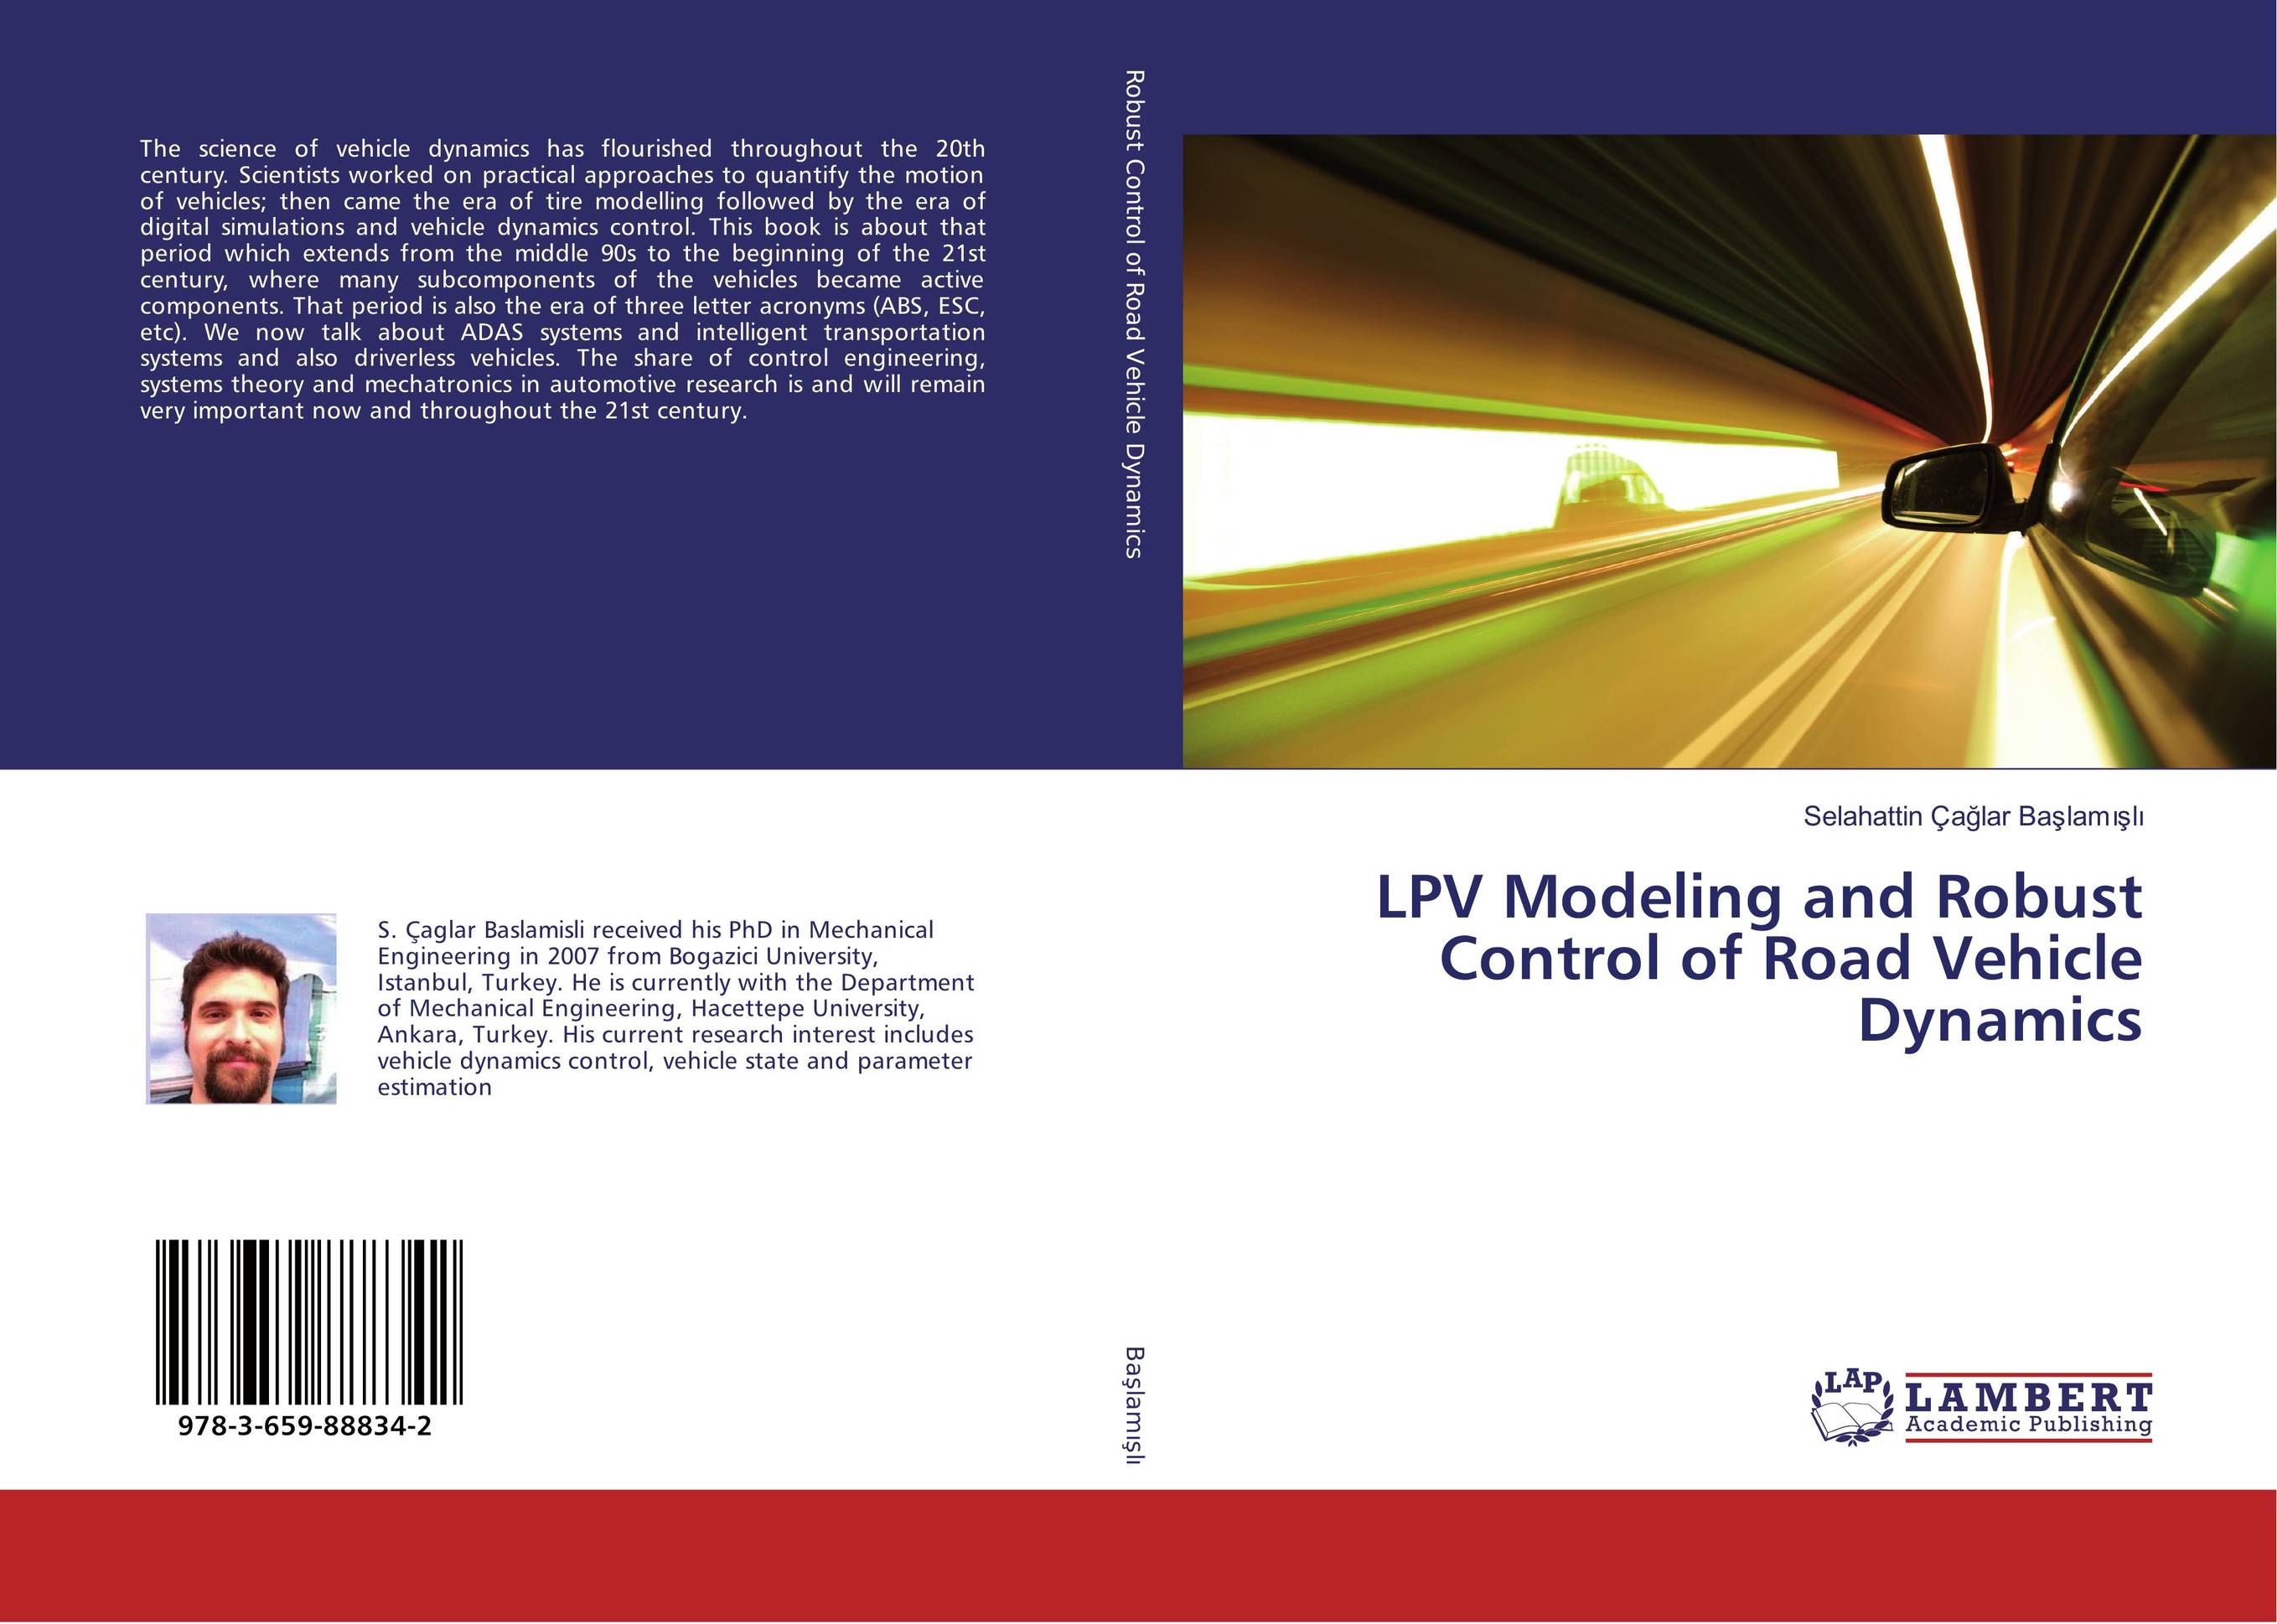 LPV Modeling and Robust Control of Road Vehicle Dynamics